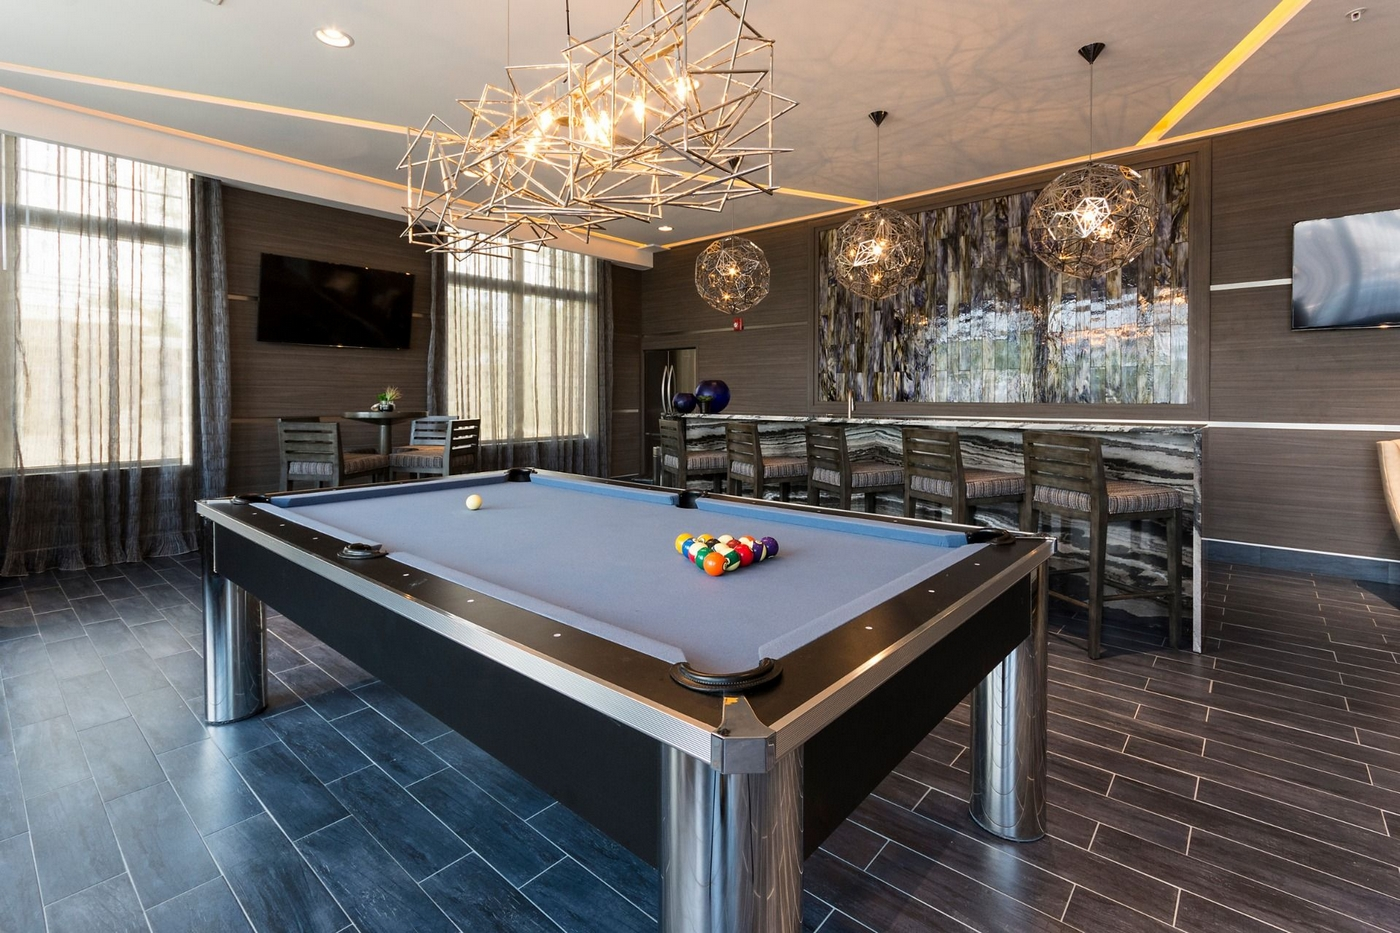 Resident lounge area with seating and billiards table